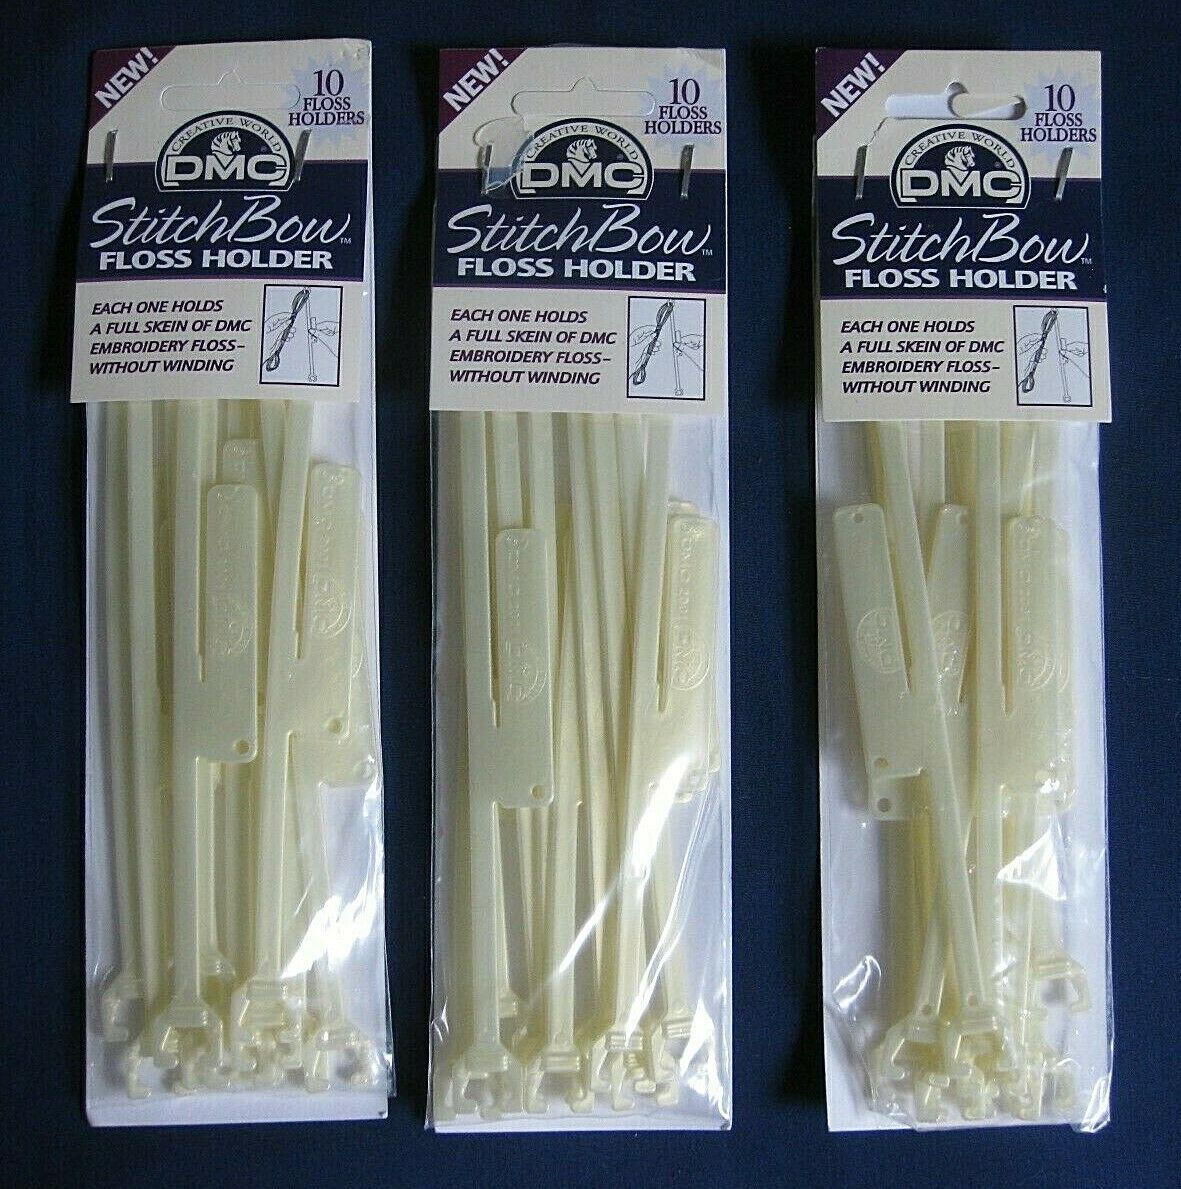 DMC StitchBow Floss Holder-10//Pack-NEW